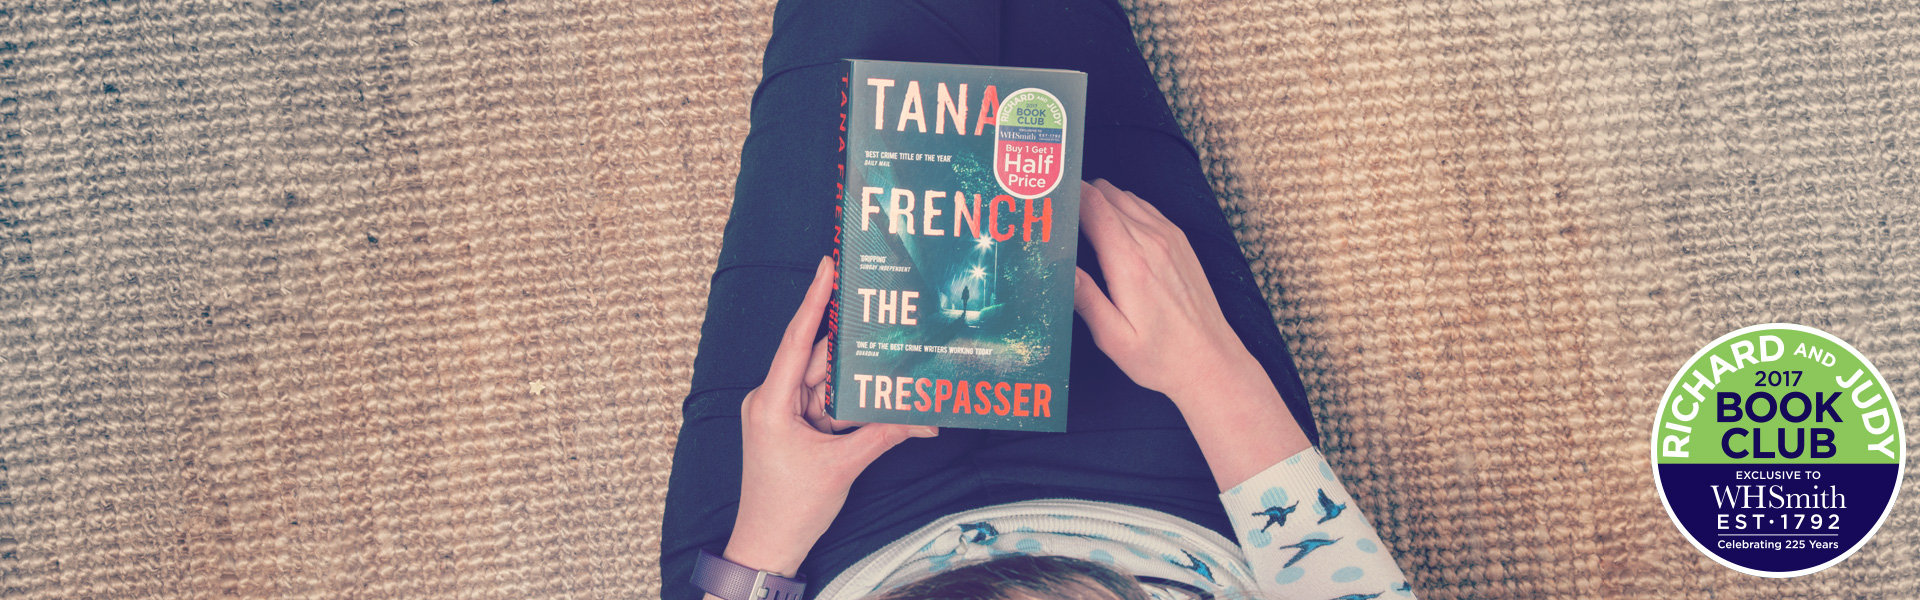 Read an Extract from The Trespasser by Tana French